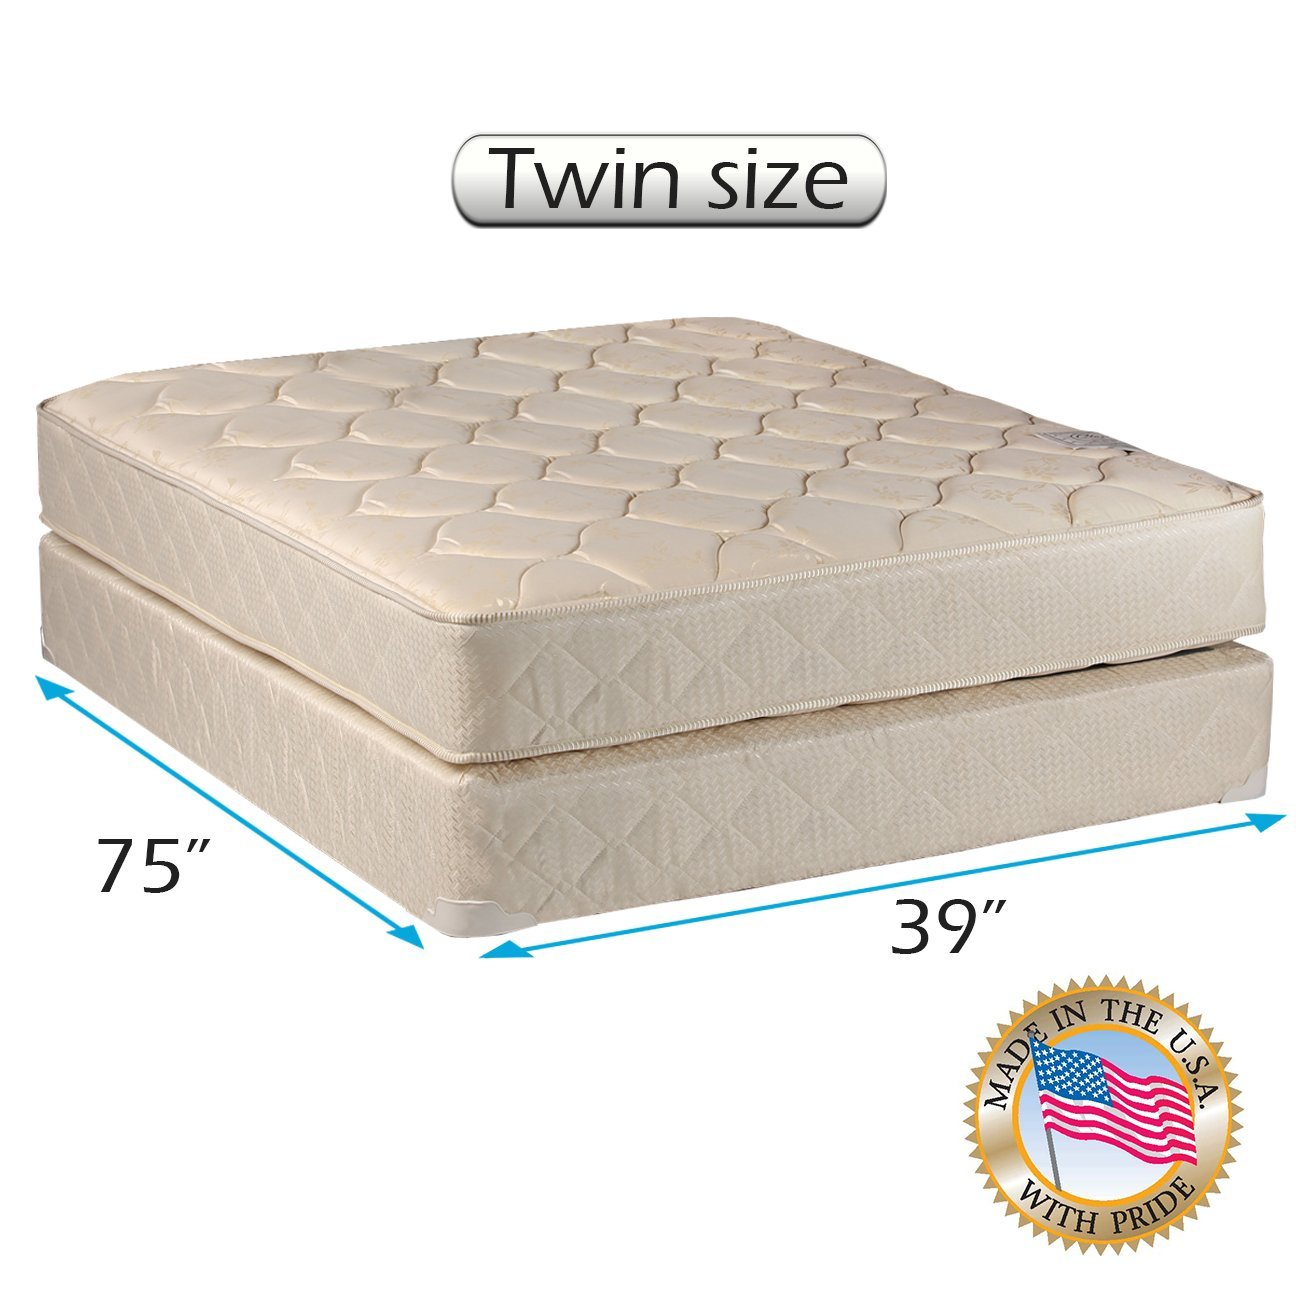 "Comfort Classic Gentle Firm Twin Size (39""x75""x9"")  Mattresses and Box Spring set - Fully assembled, Orthopedic, Good for your back, Longlasting and Super Quality by Dream Solutions USA"